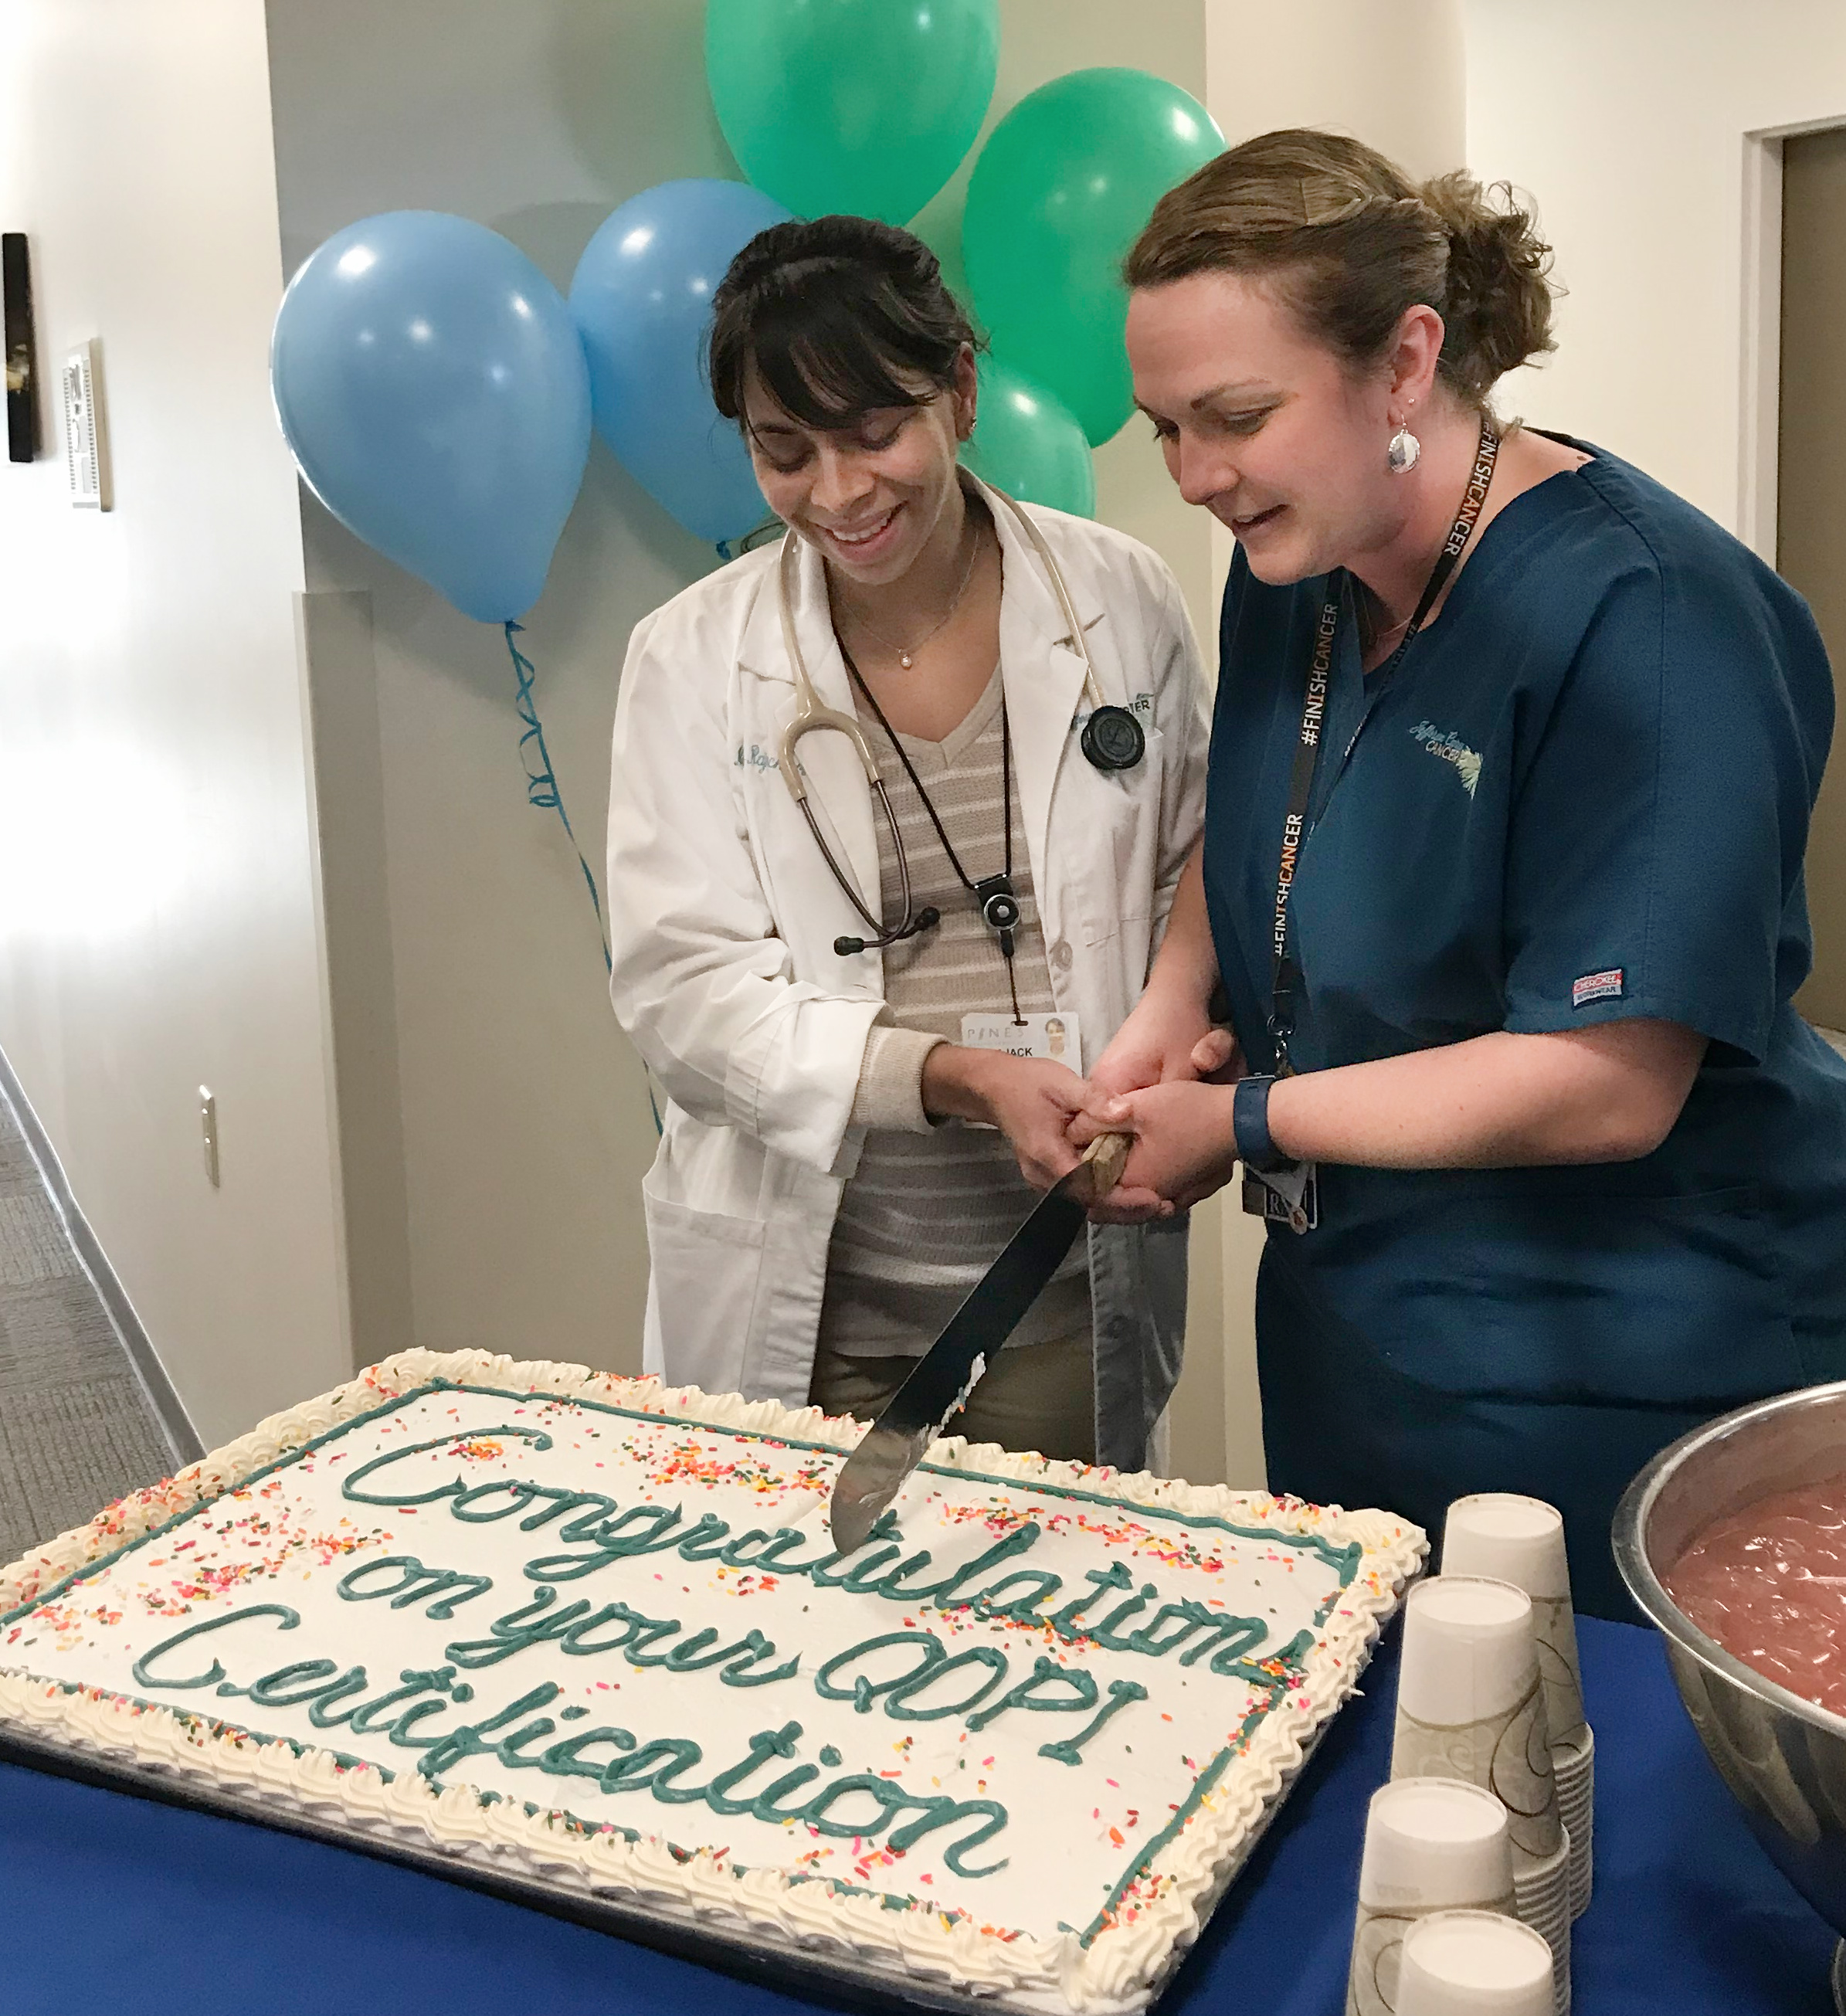 Cancer center earns national certification - The County